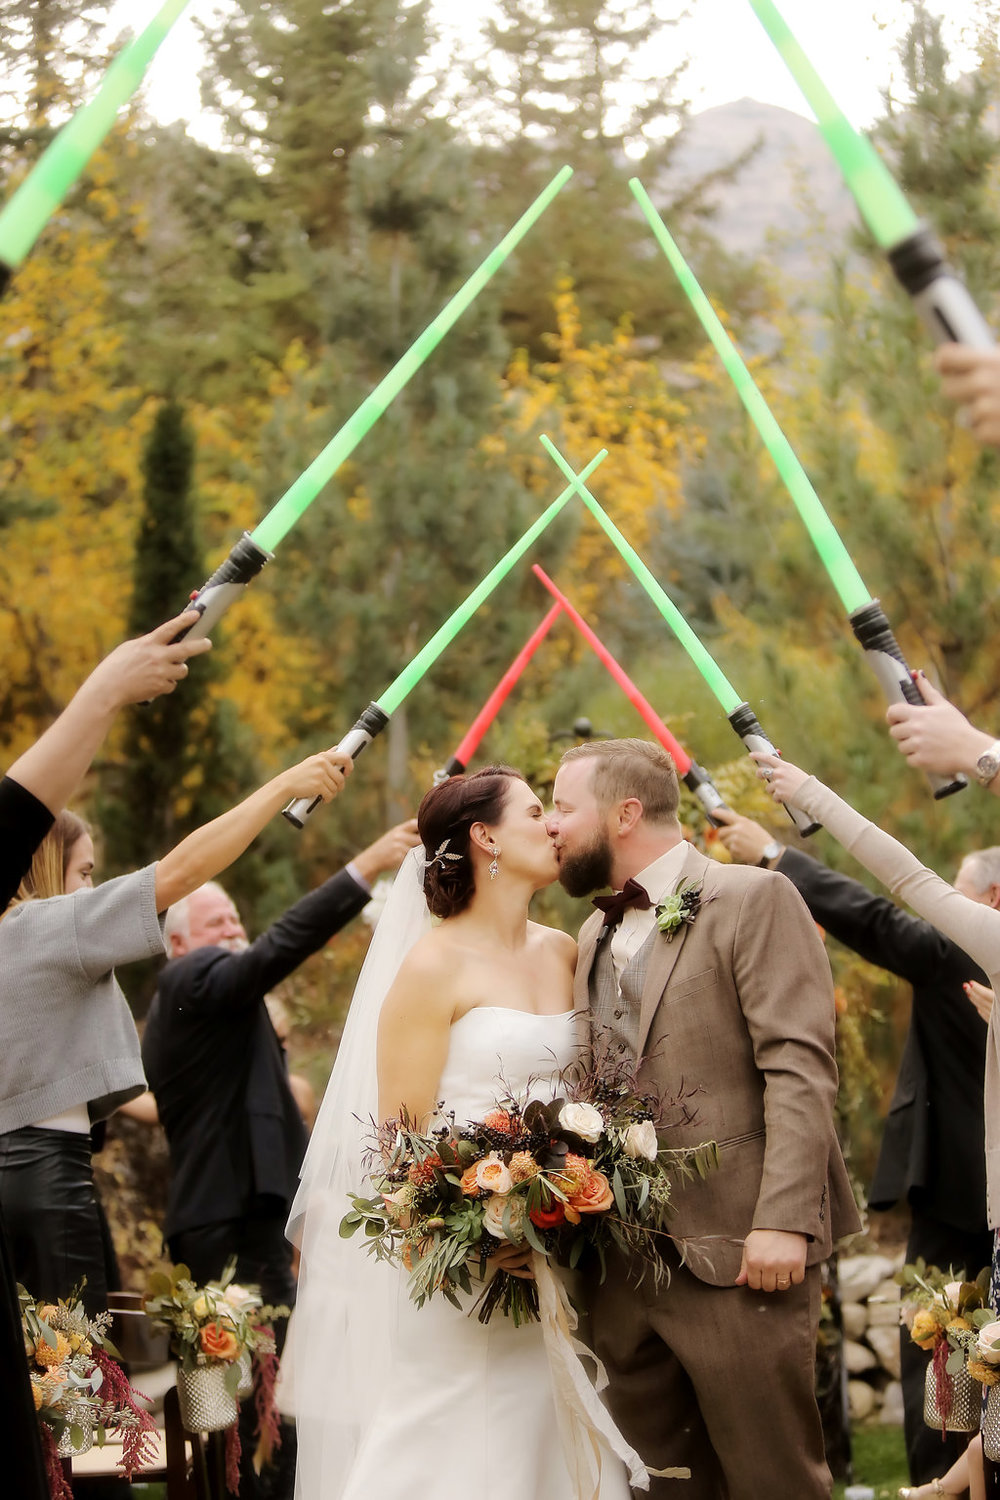 Sundance Wedding | Fall Wedding | Star Wars Inspired Wedding | Michelle Leo Events | Utah Event Planner and Designer | Pepper Nix Photography